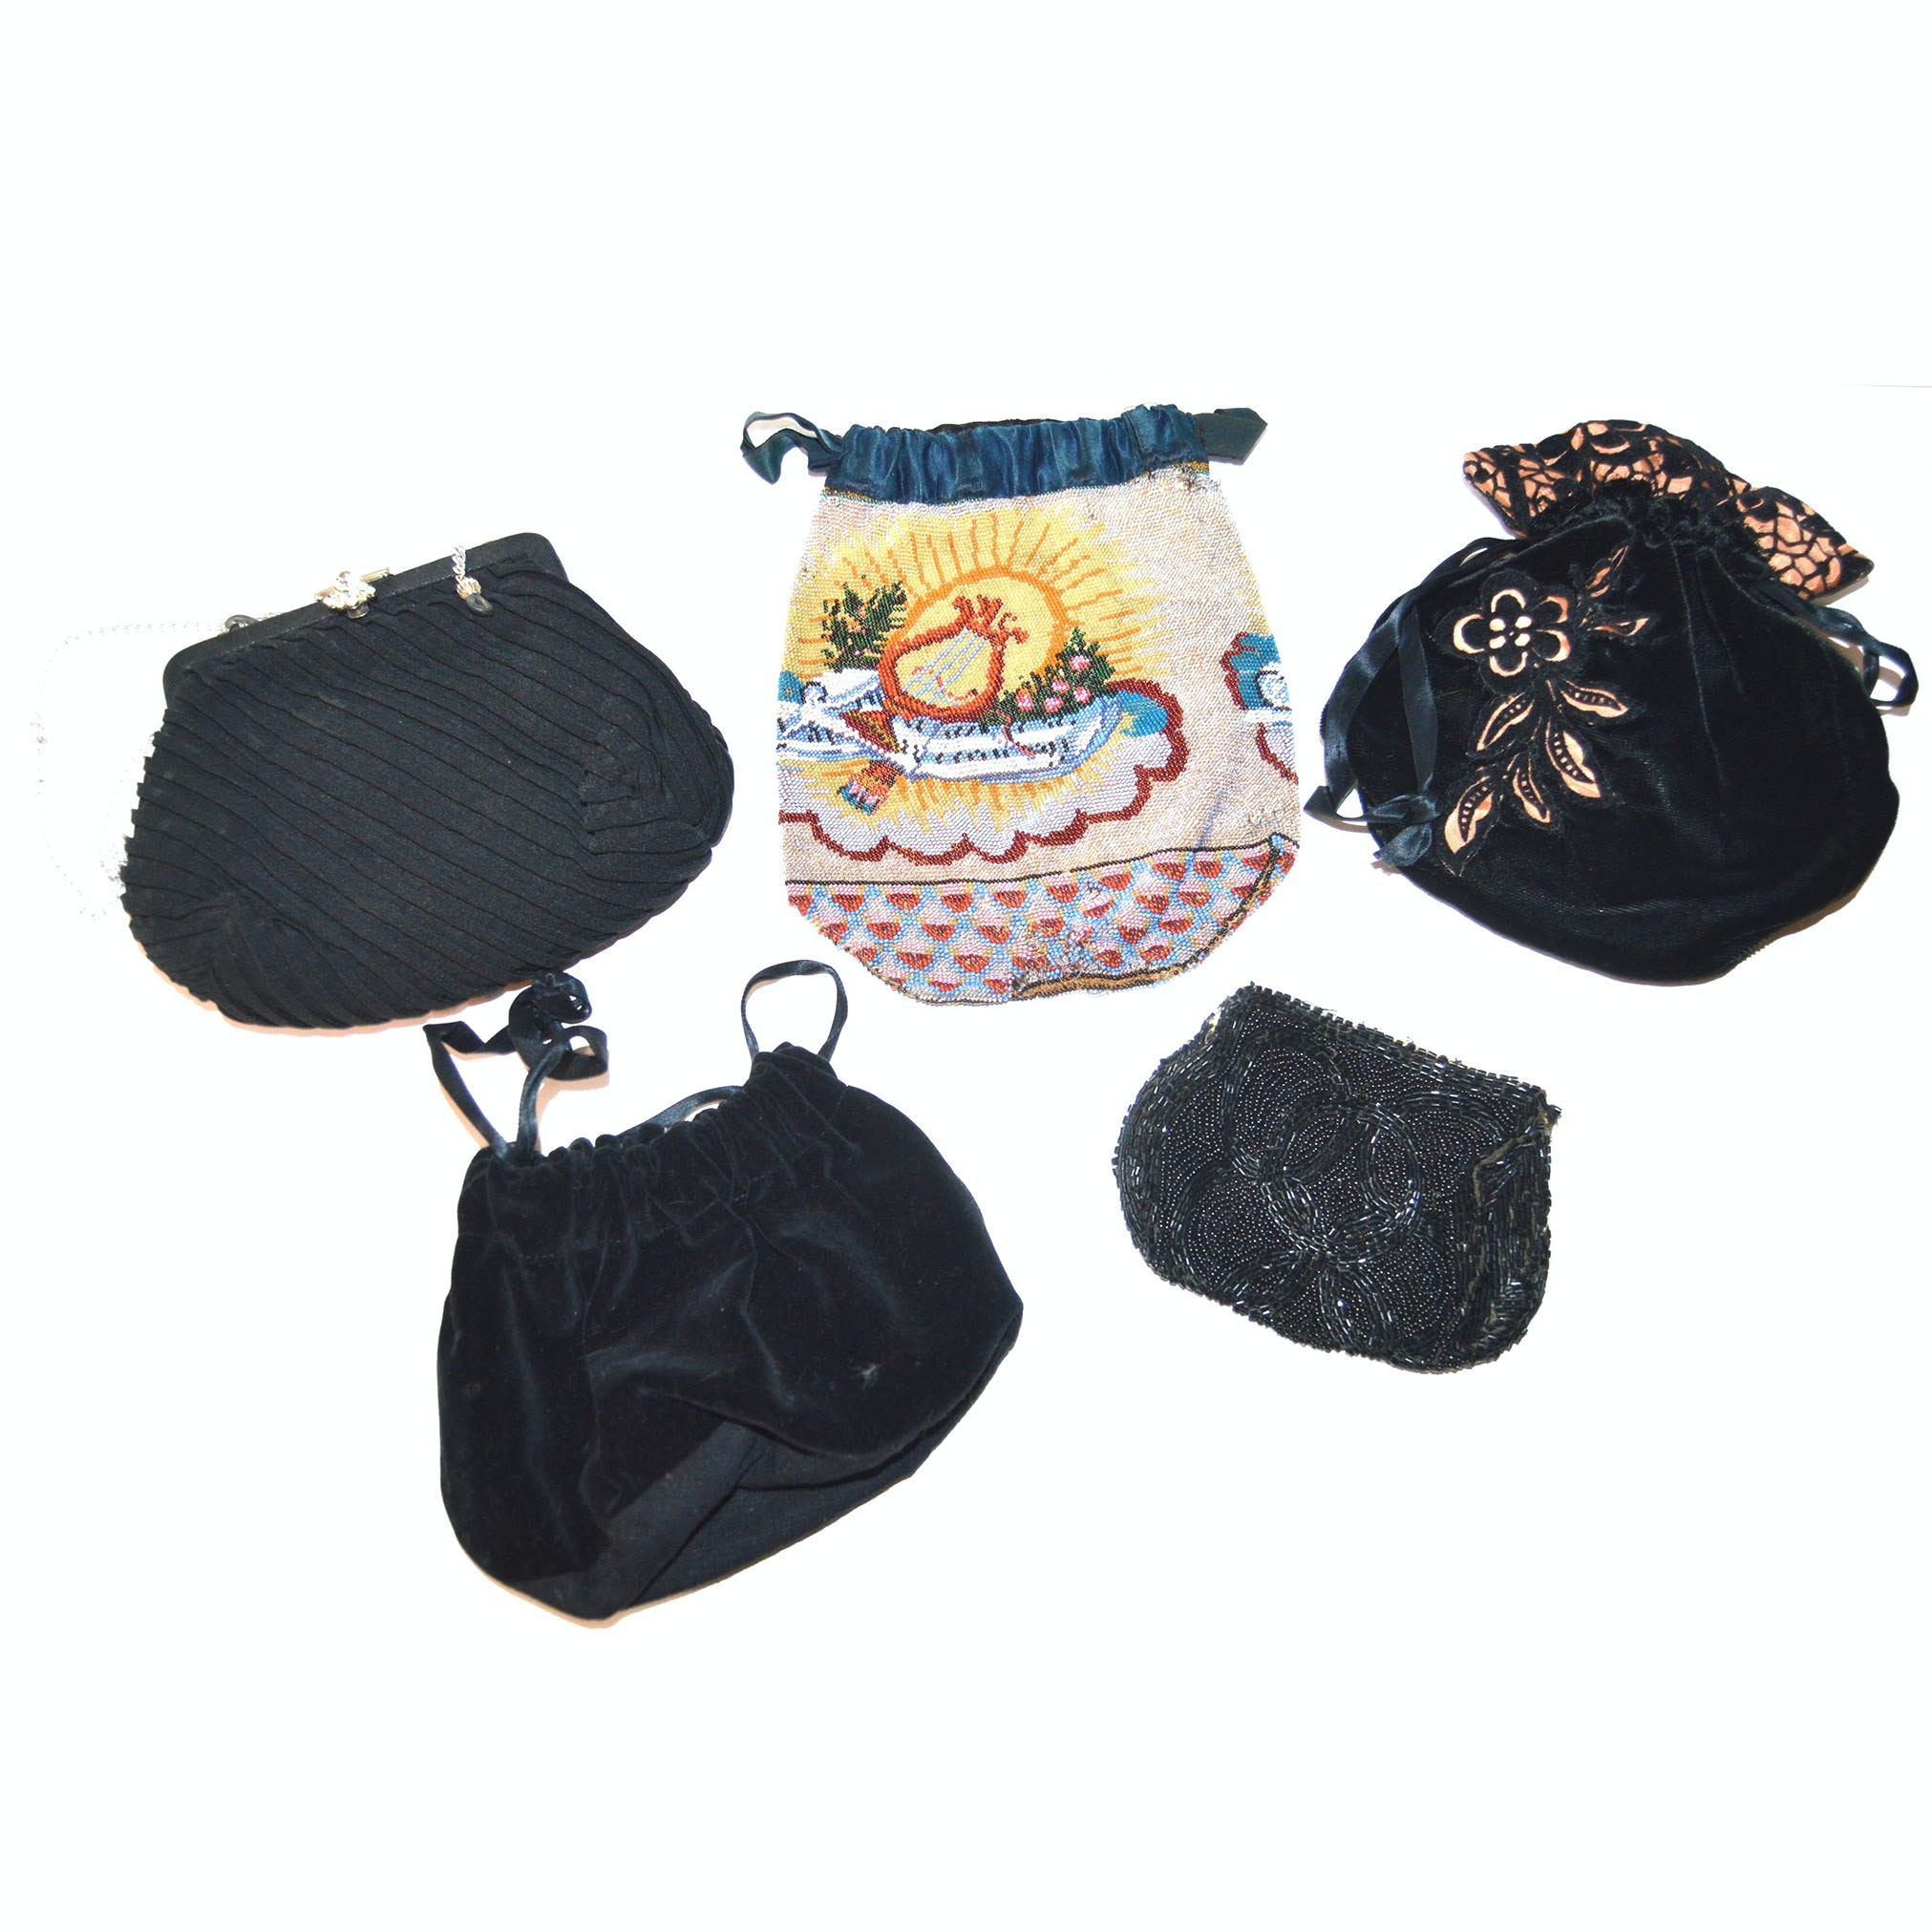 Five Vintage Embellished Handbags